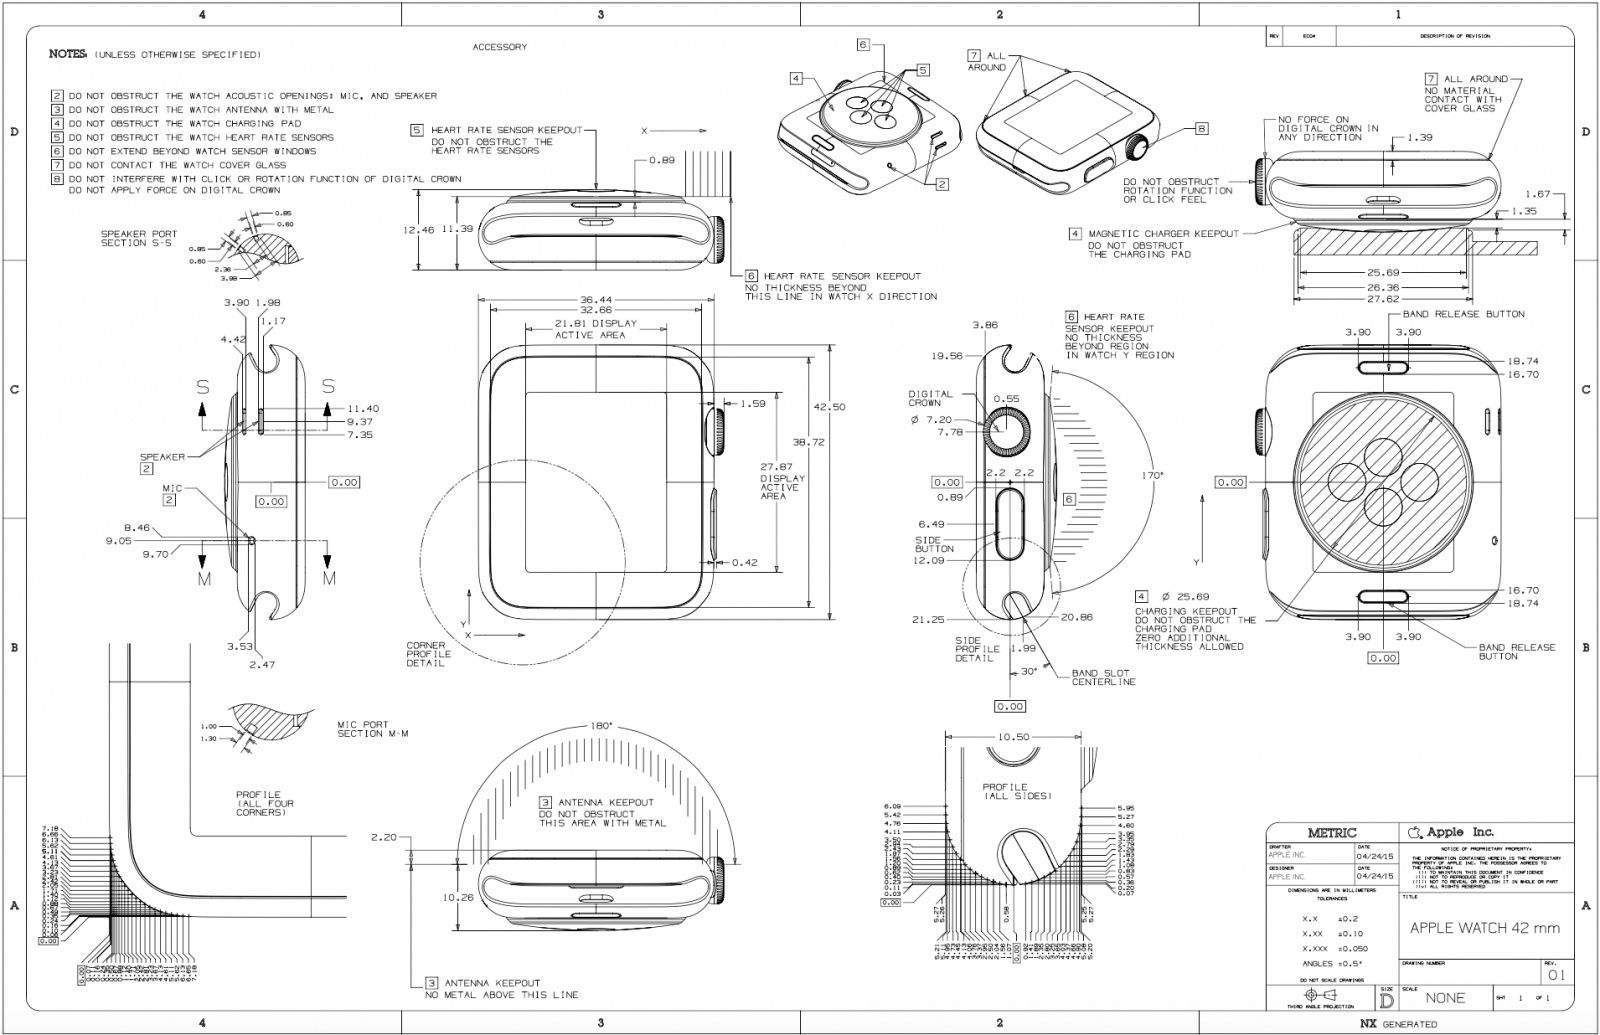 iphone 3 circuit diagram wiring diagram USB Circuit Diagram iphone 3 circuit diagram wiring diagramdesign nerds will love this beautiful apple watch schematic(click